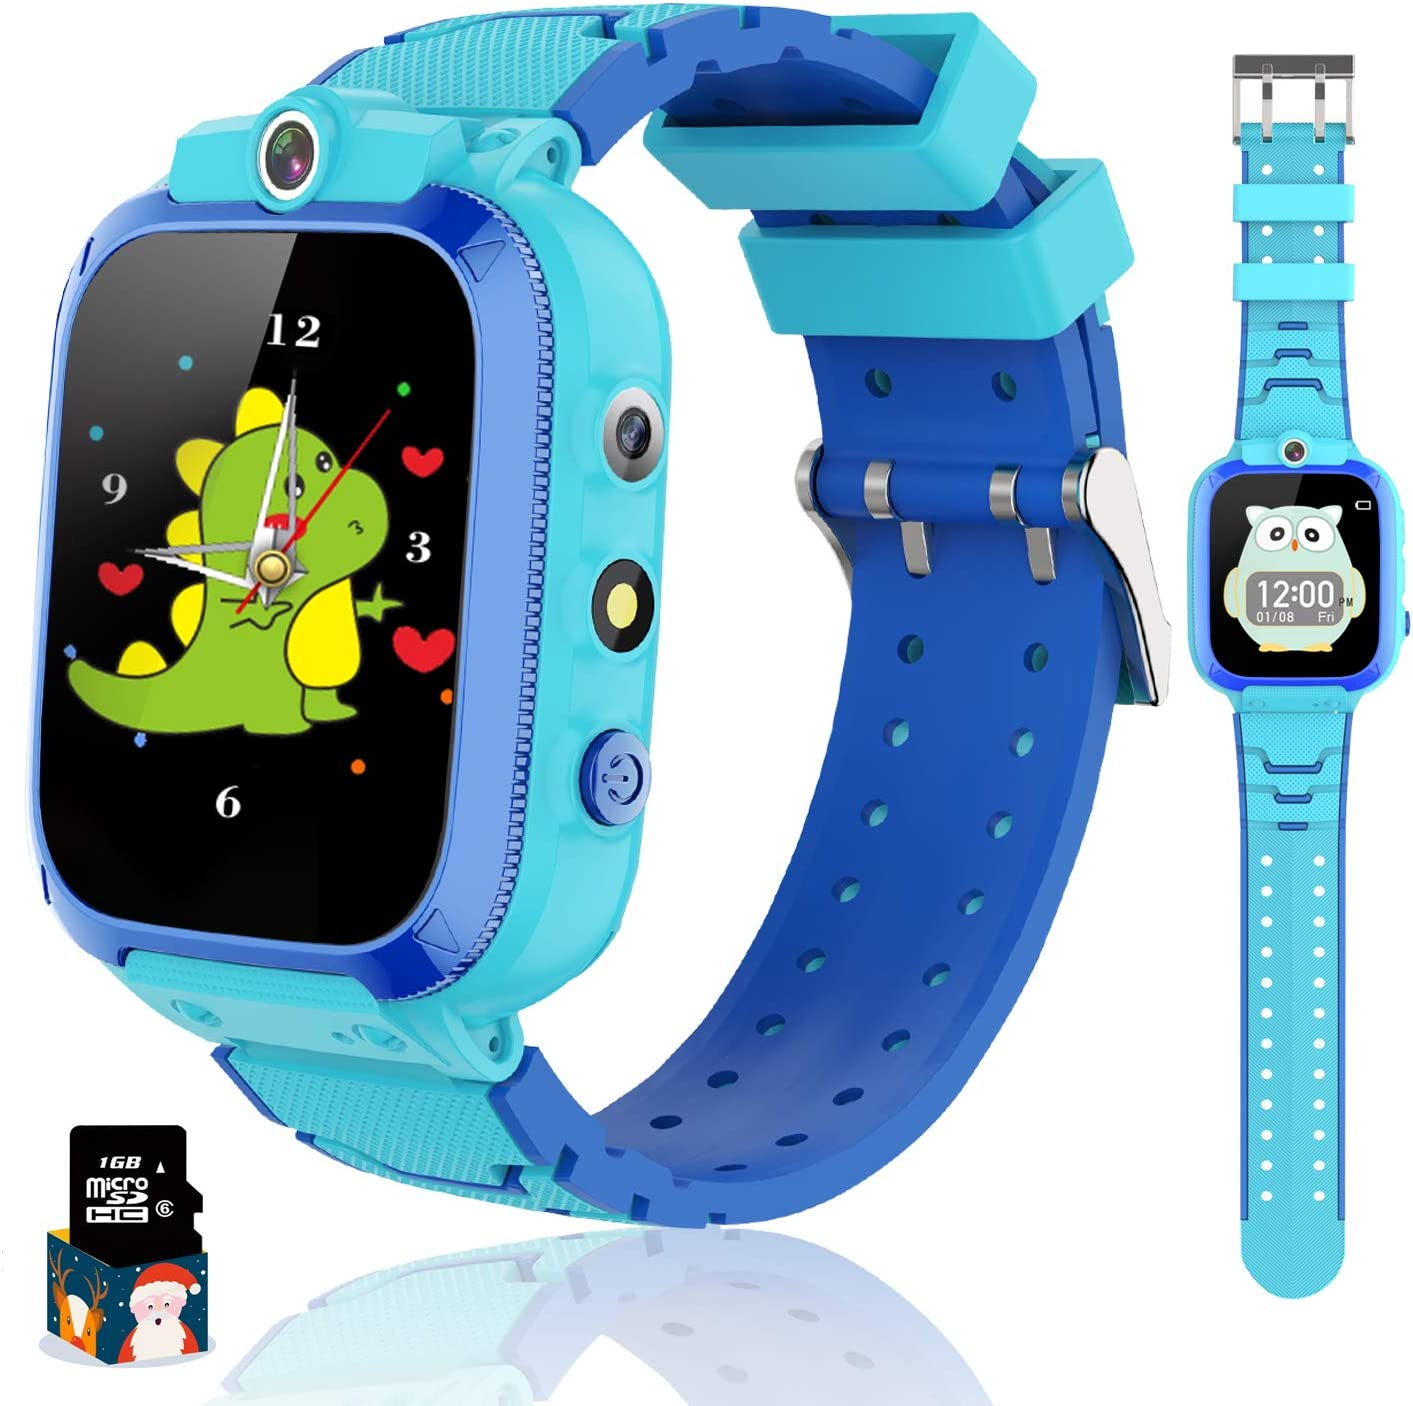 Themoemoe Kids Smart Watch for Boys Girls, Kids Music Watch Touch Screen with Dual Cameras 14 Games Pedometer Sport Alarm Clock Flashlight, Kids Watch for Childern Birthday Gifts 3-12(Blue)